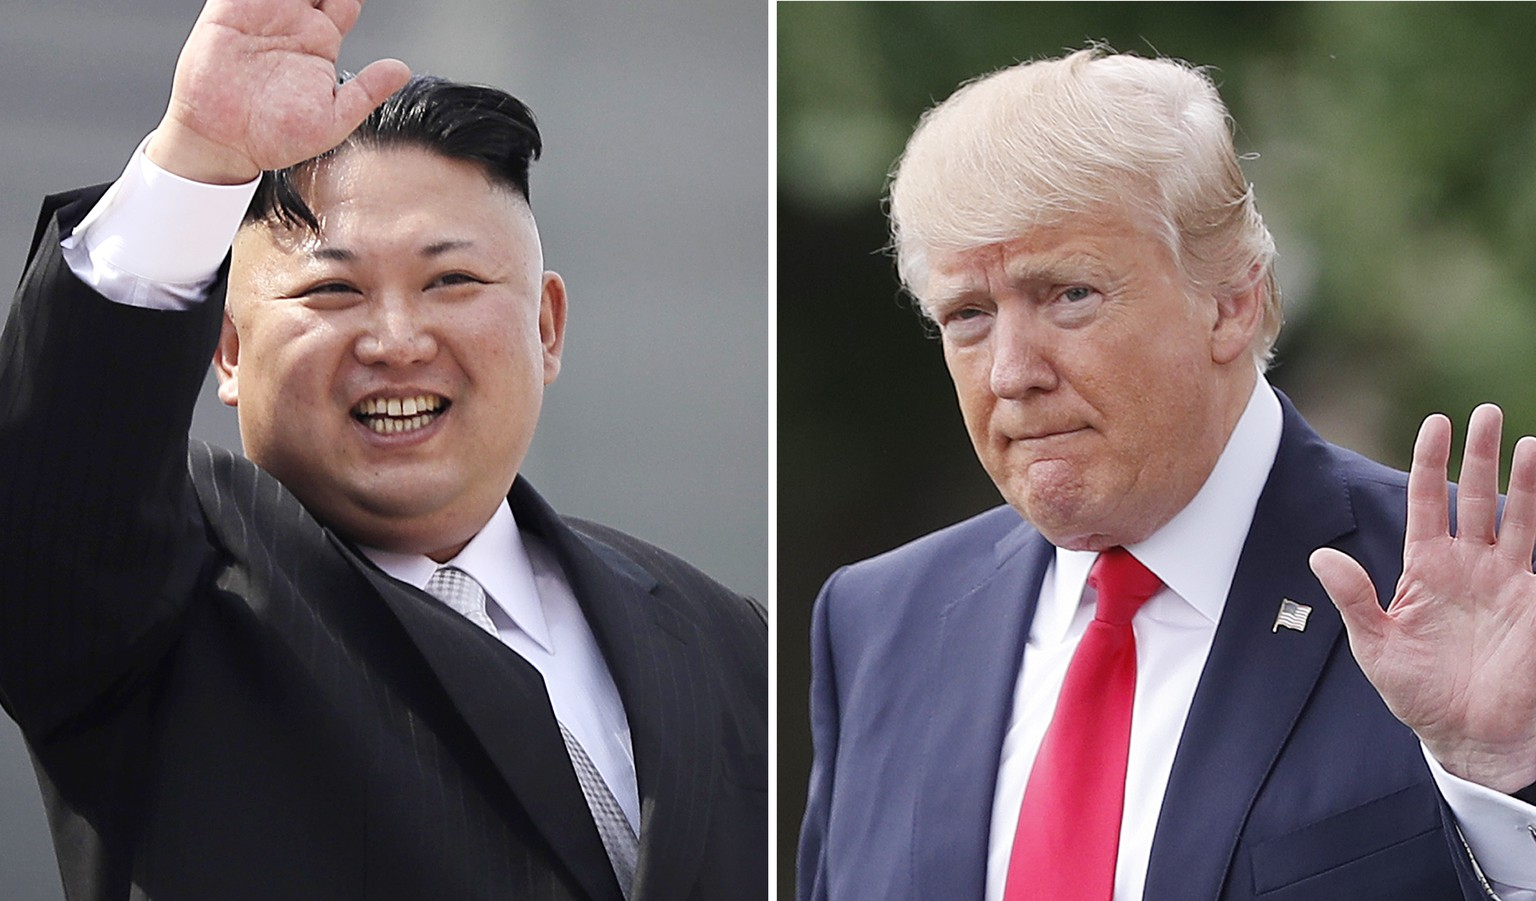 FILE - This combination of photos shows North Korean leader Kim Jong Un on April 15, 2017, in Pyongyang, North Korea, left, and U.S. President Donald Trump in Washington on April 29, 2017. The notion of a substantive sit-down between North Korean leader Kim Jong Un and U.S. President Donald Trump – the most gazed-upon figures of this moment in the planet's history – is a staggering prospect and a potential logistical nightmare if the two countries ever tried to make it happen. (AP Photo/Wong Maye-E, Pablo Martinez Monsivais, Files)